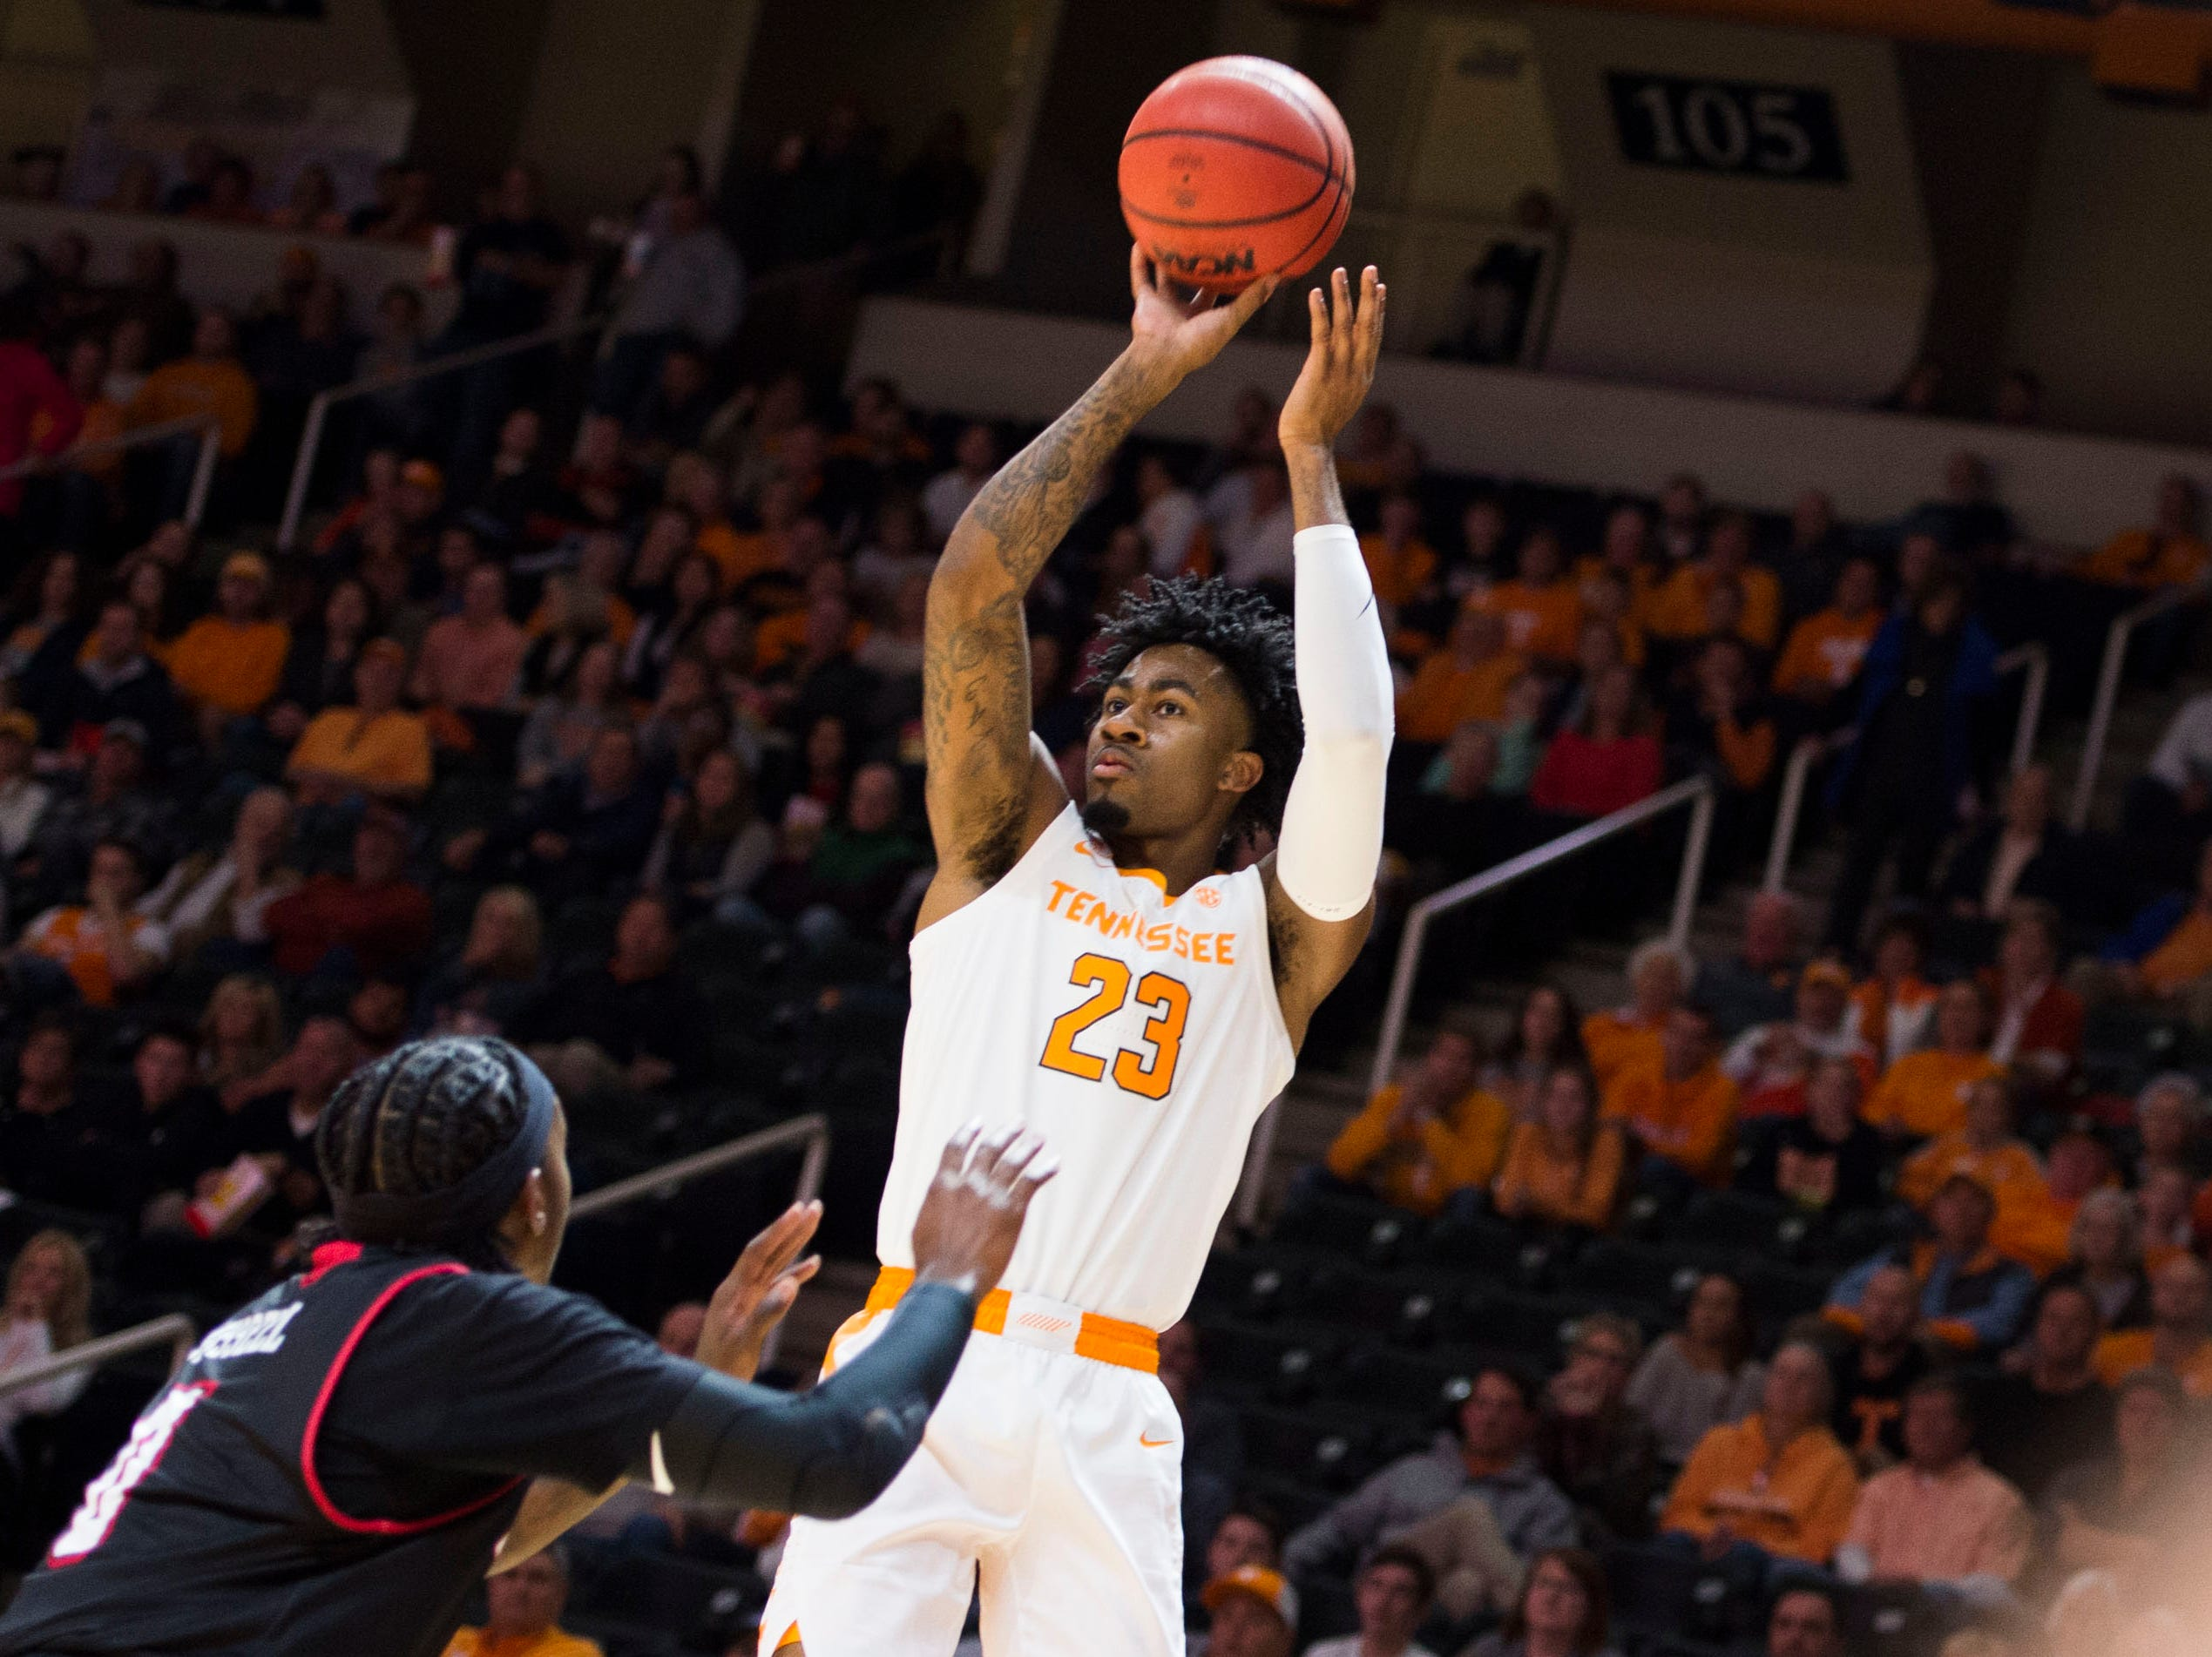 Tennessee's Jordan Bowden (23) takes a shot during a game between Tennessee and Louisiana in Thompson-Boling Arena Friday, Nov. 9, 2018.